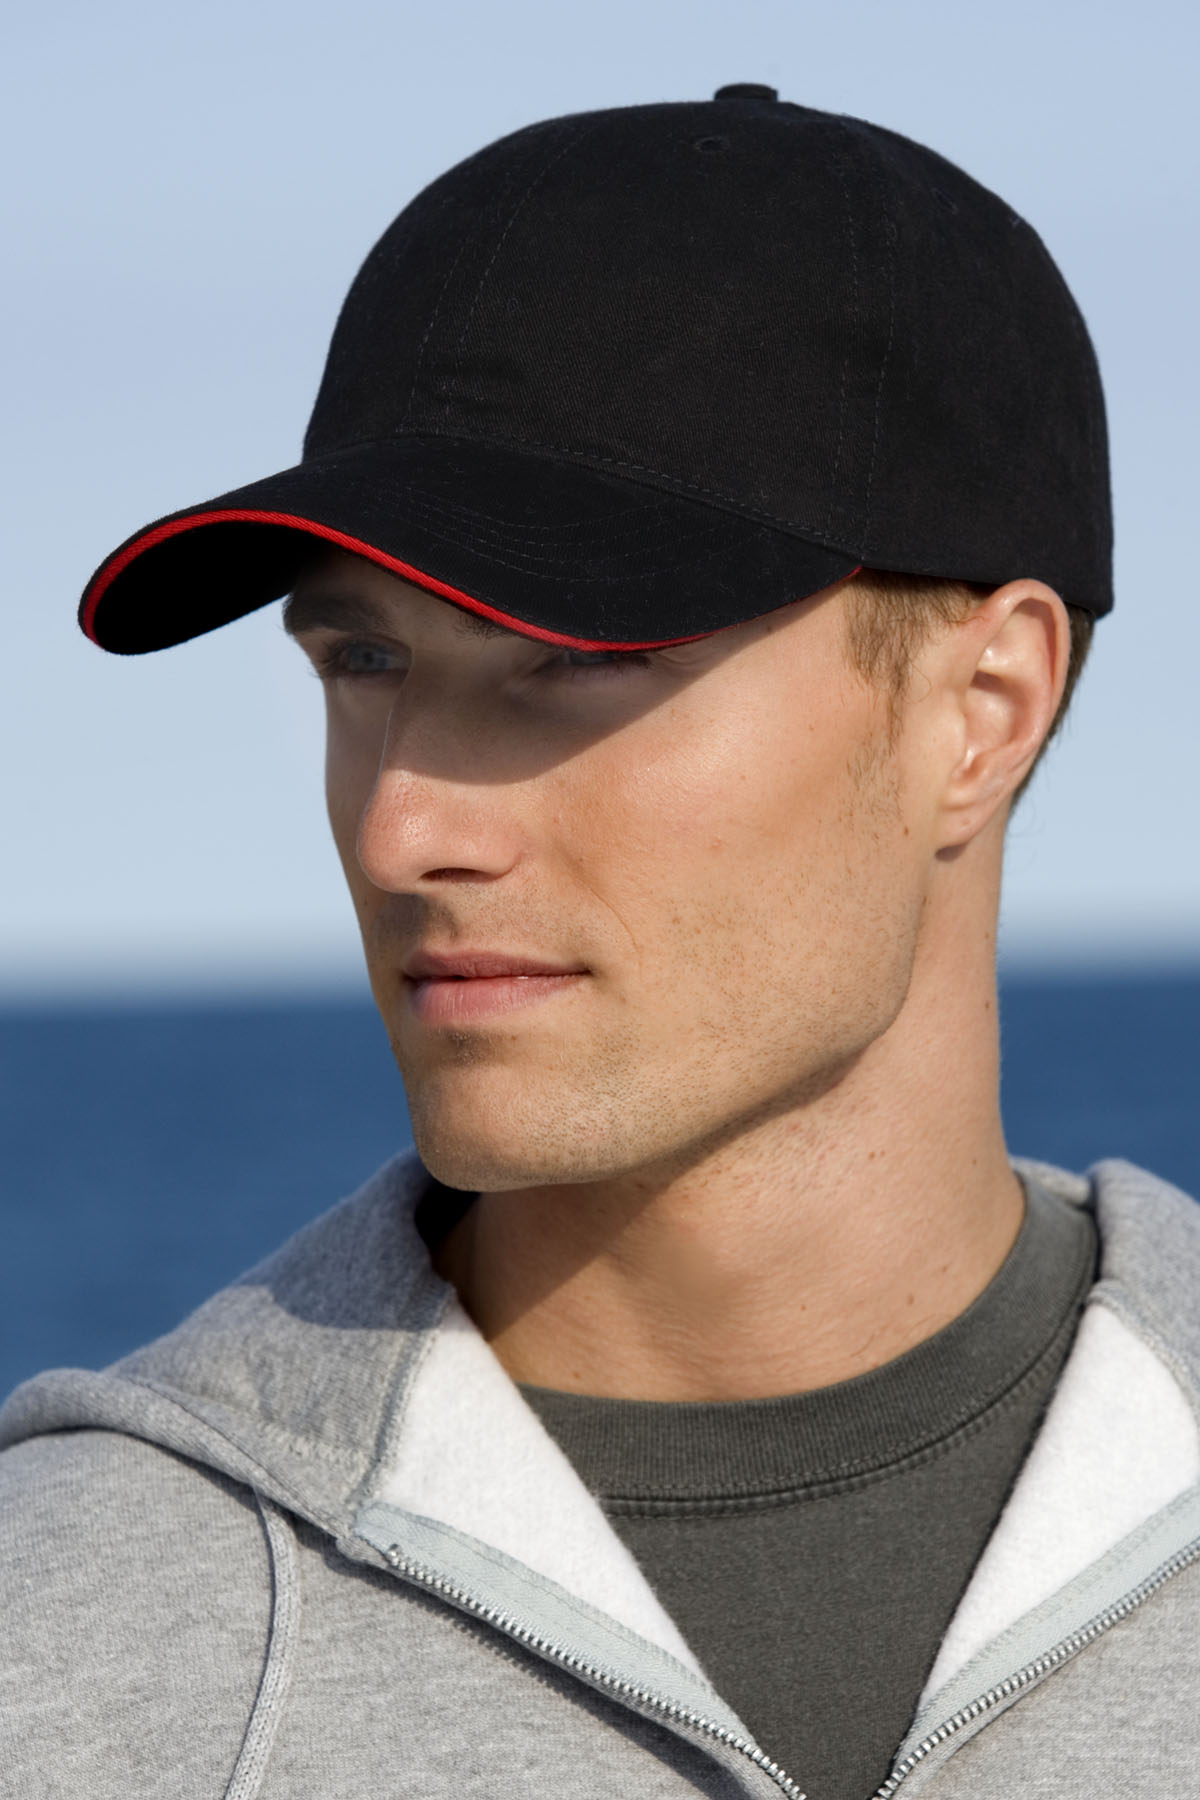 Vantage 0160 - Solid Brushed Twill Cap w Sandwich Visor